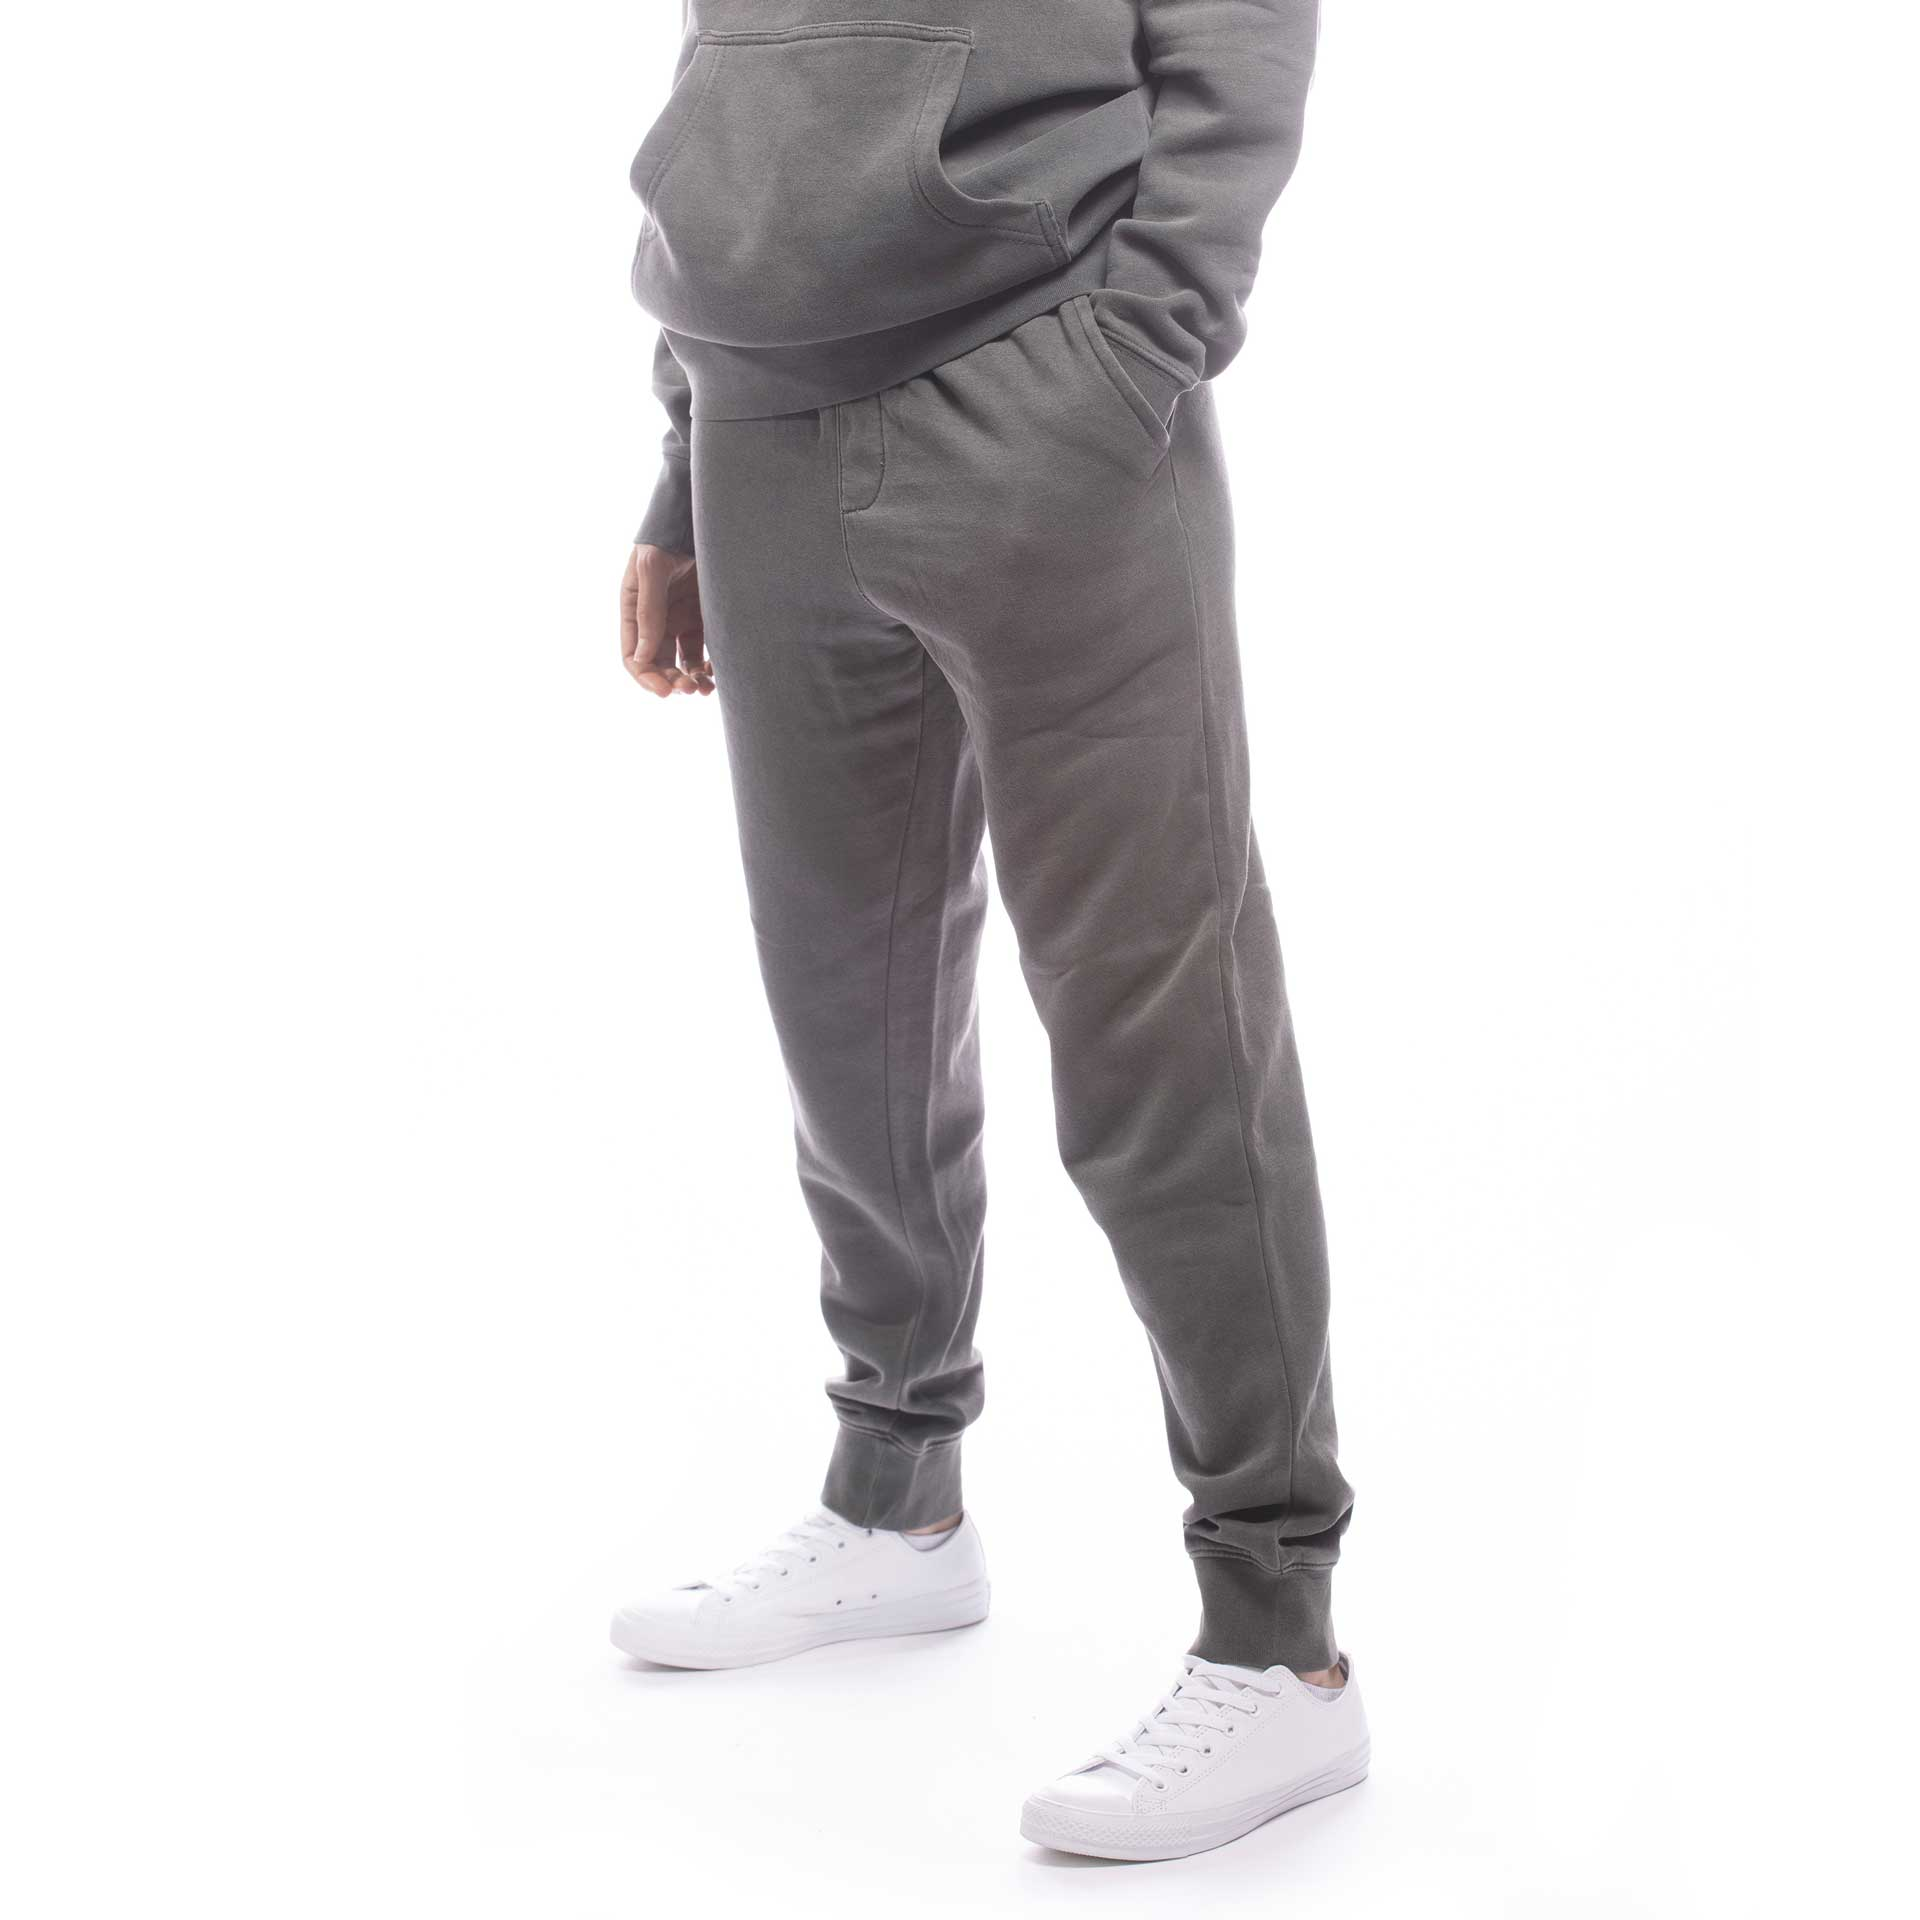 Unisex Upcycled Jogger - Made For The People - Black